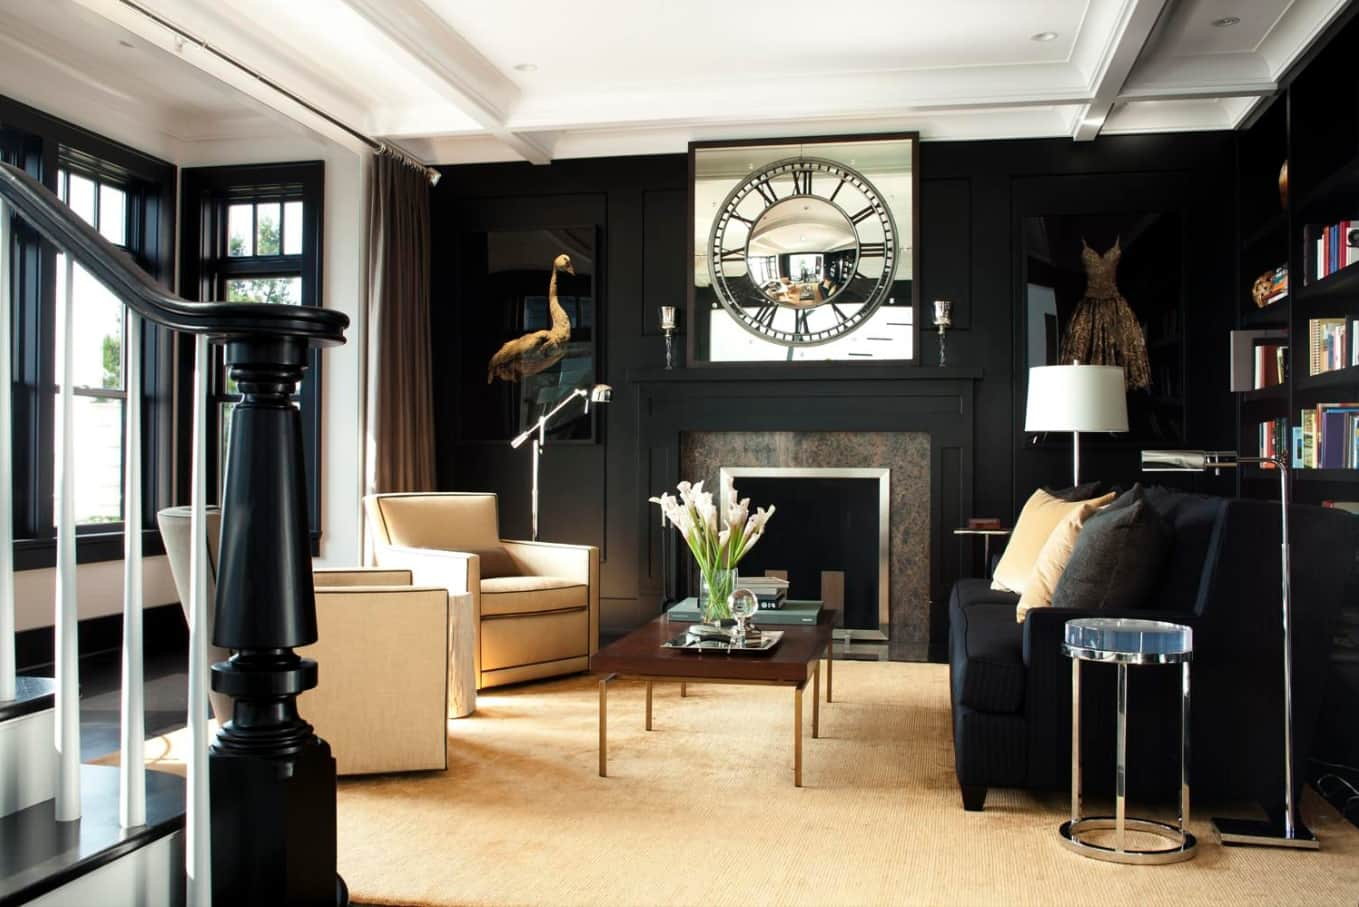 Black Interior Design Ideas and Tips to Make Your Interior. Light floor foe contrasting but inviting living room with artificial fireplace and large clock